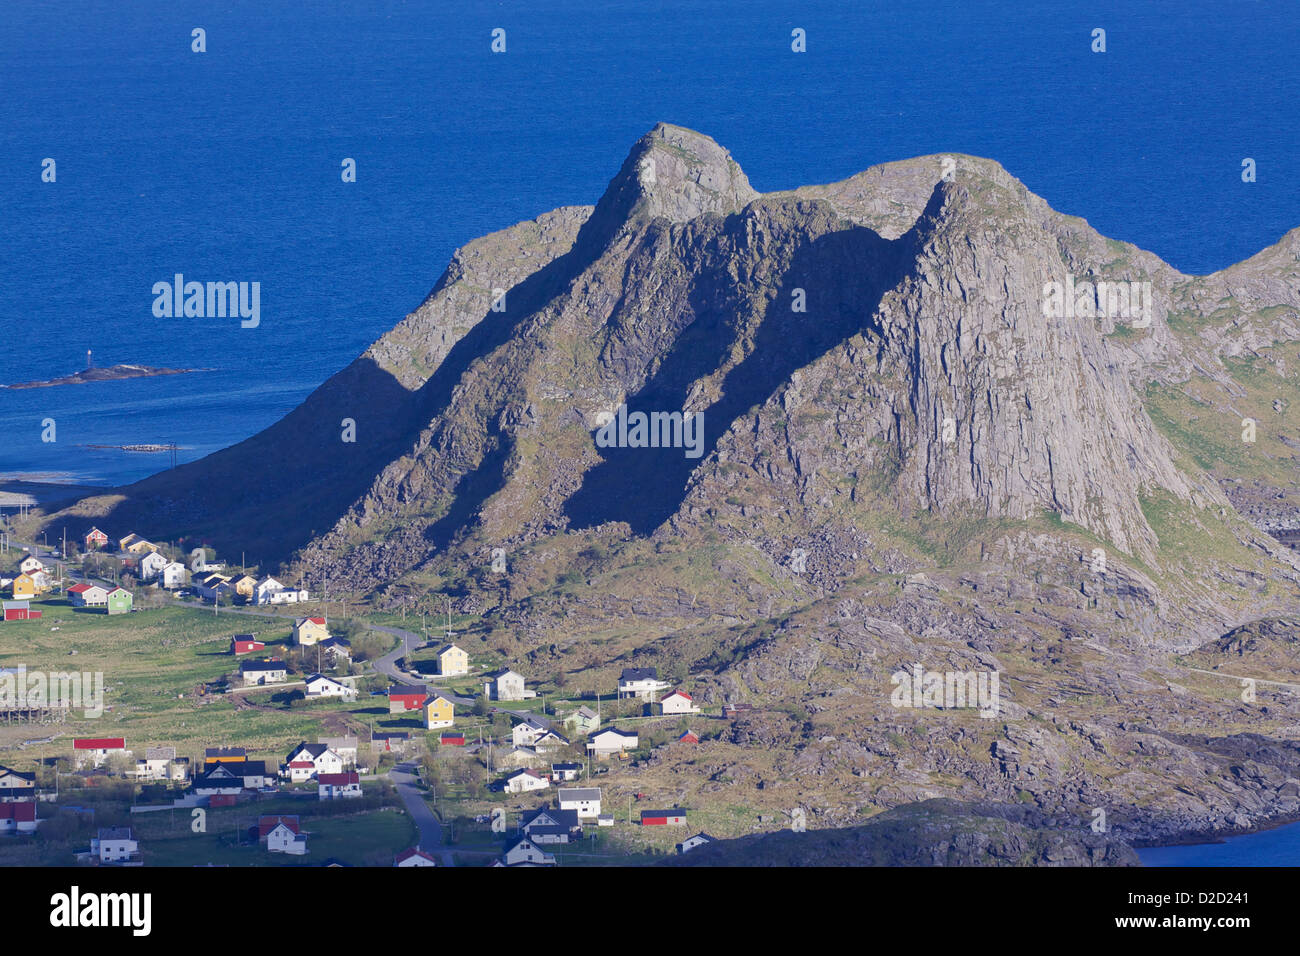 Aerial view of picturesque town Sorland on Lofoten islands in Norway - Stock Image